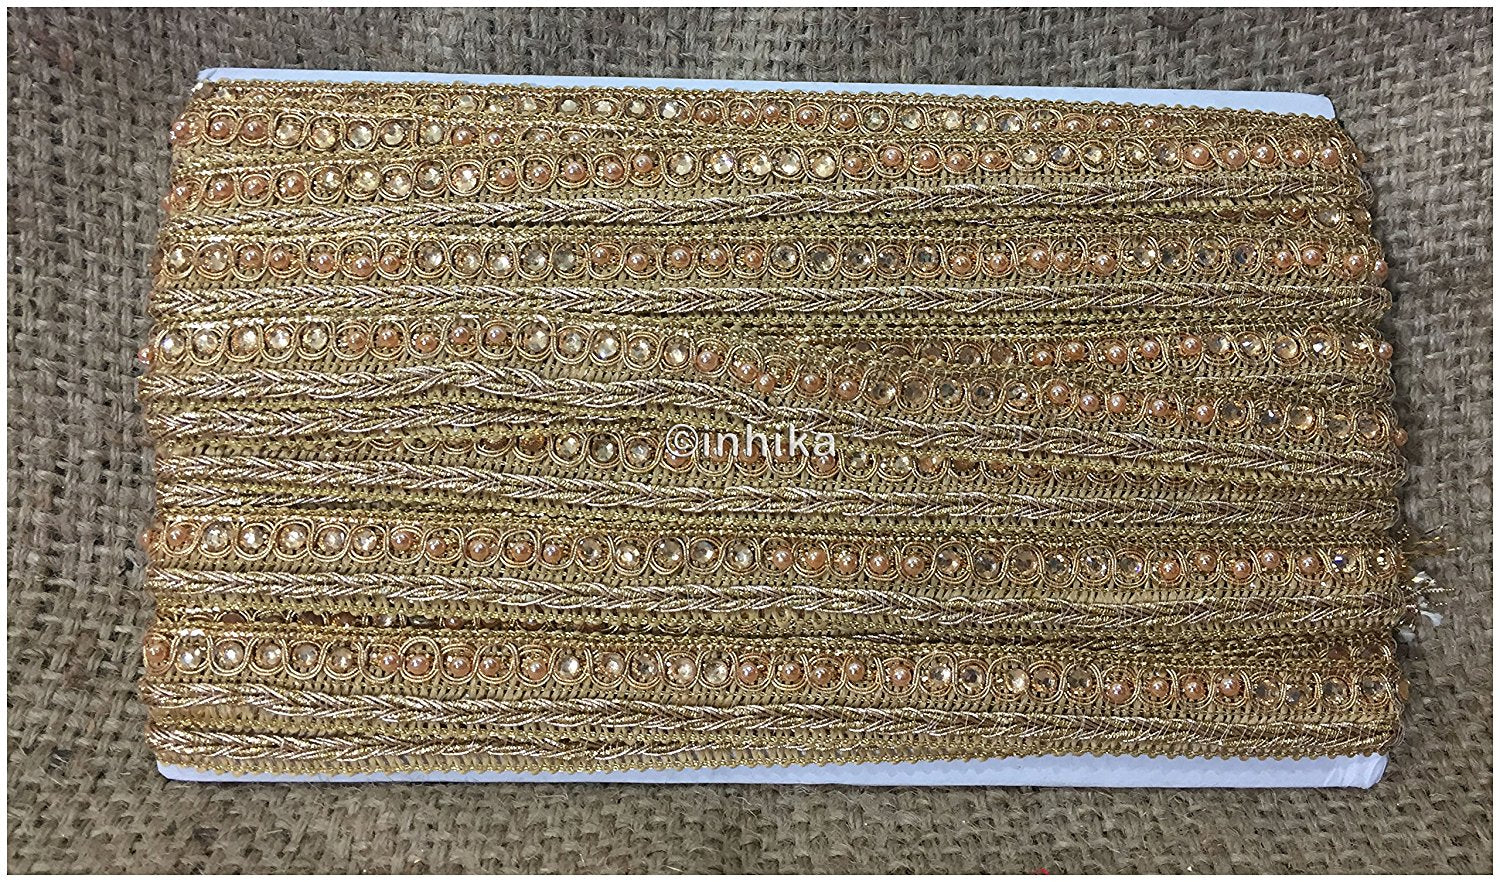 lace trim fabric lace material for dressmaking by the yard Gold, Embroidery, Stone, Pearl, 1 Inch Wide material Cotton Mix